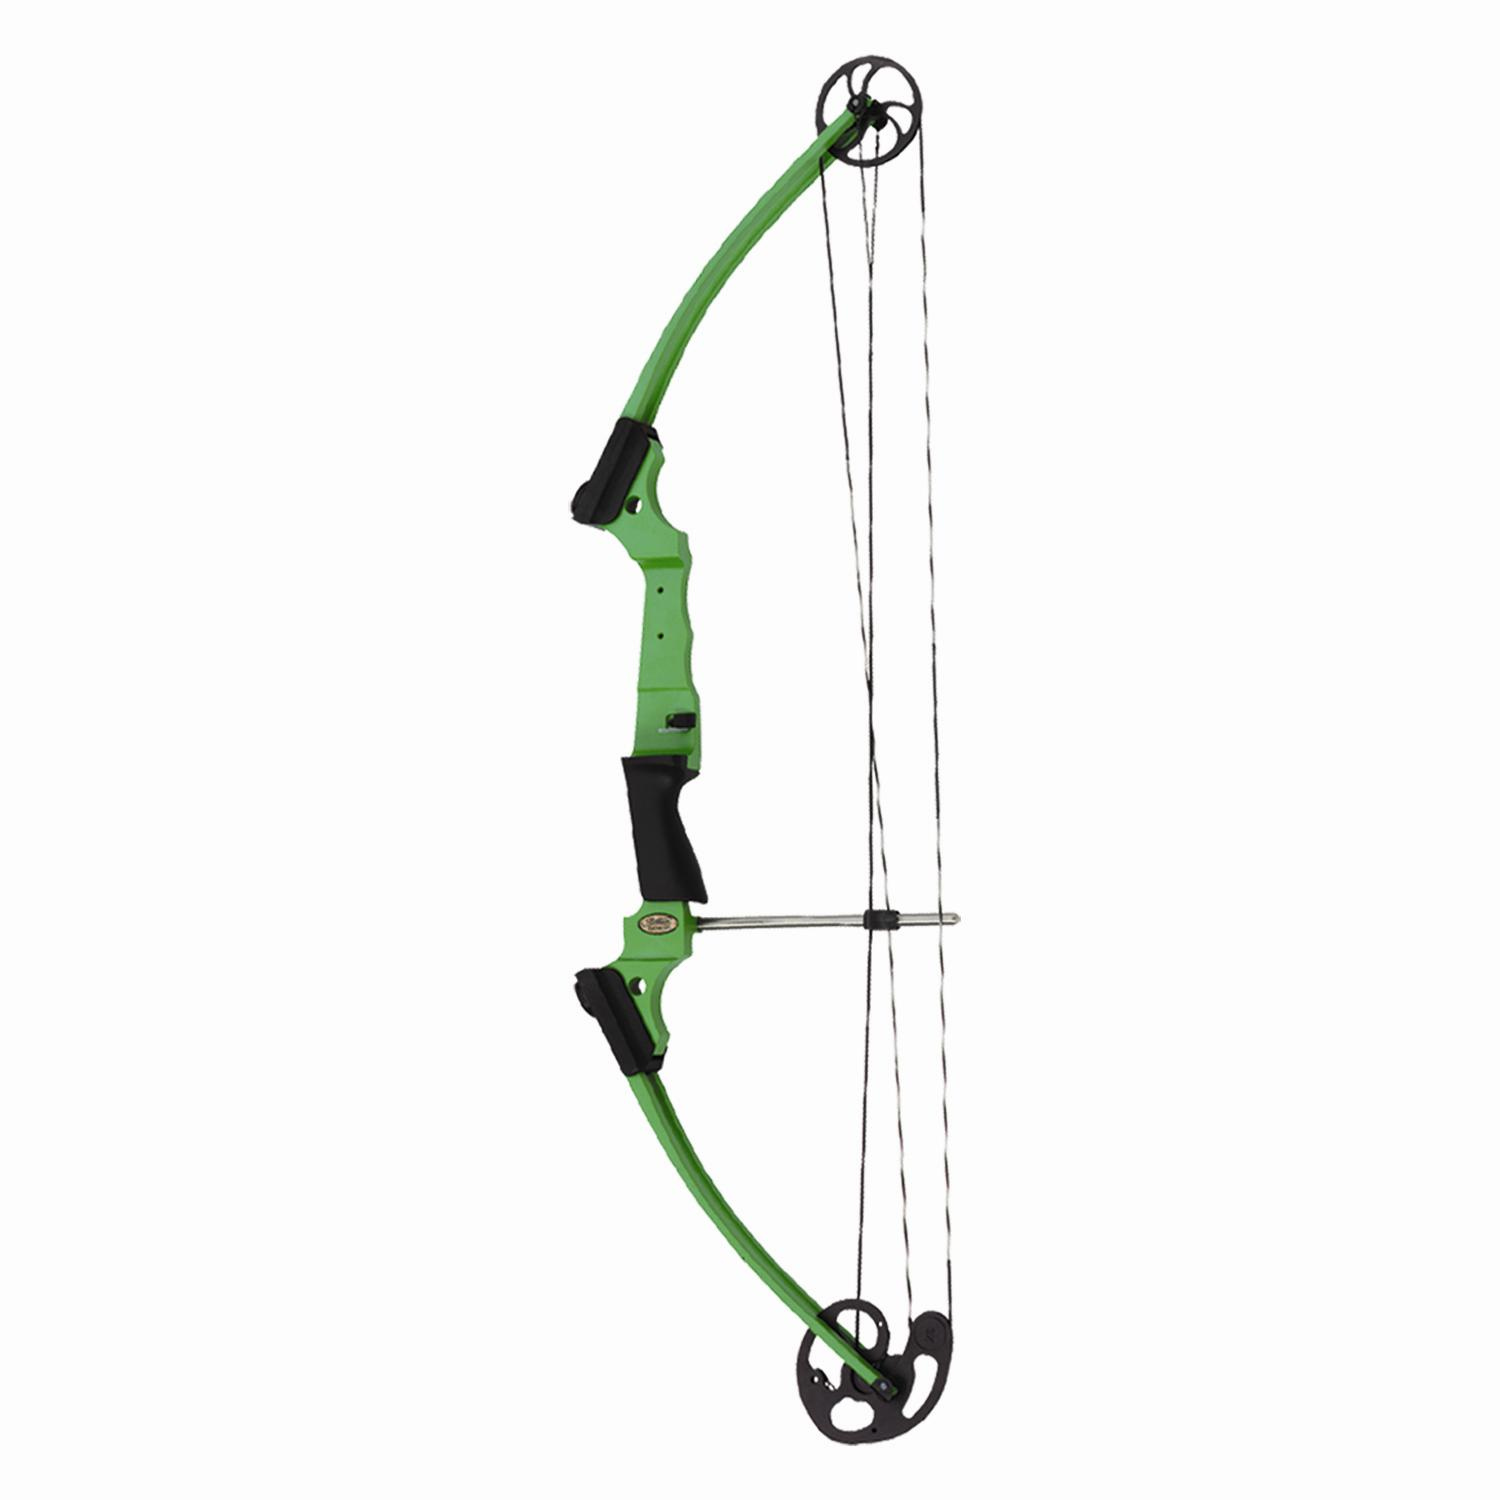 Mathews Genesis compound bow Green Archery Supplies Australia